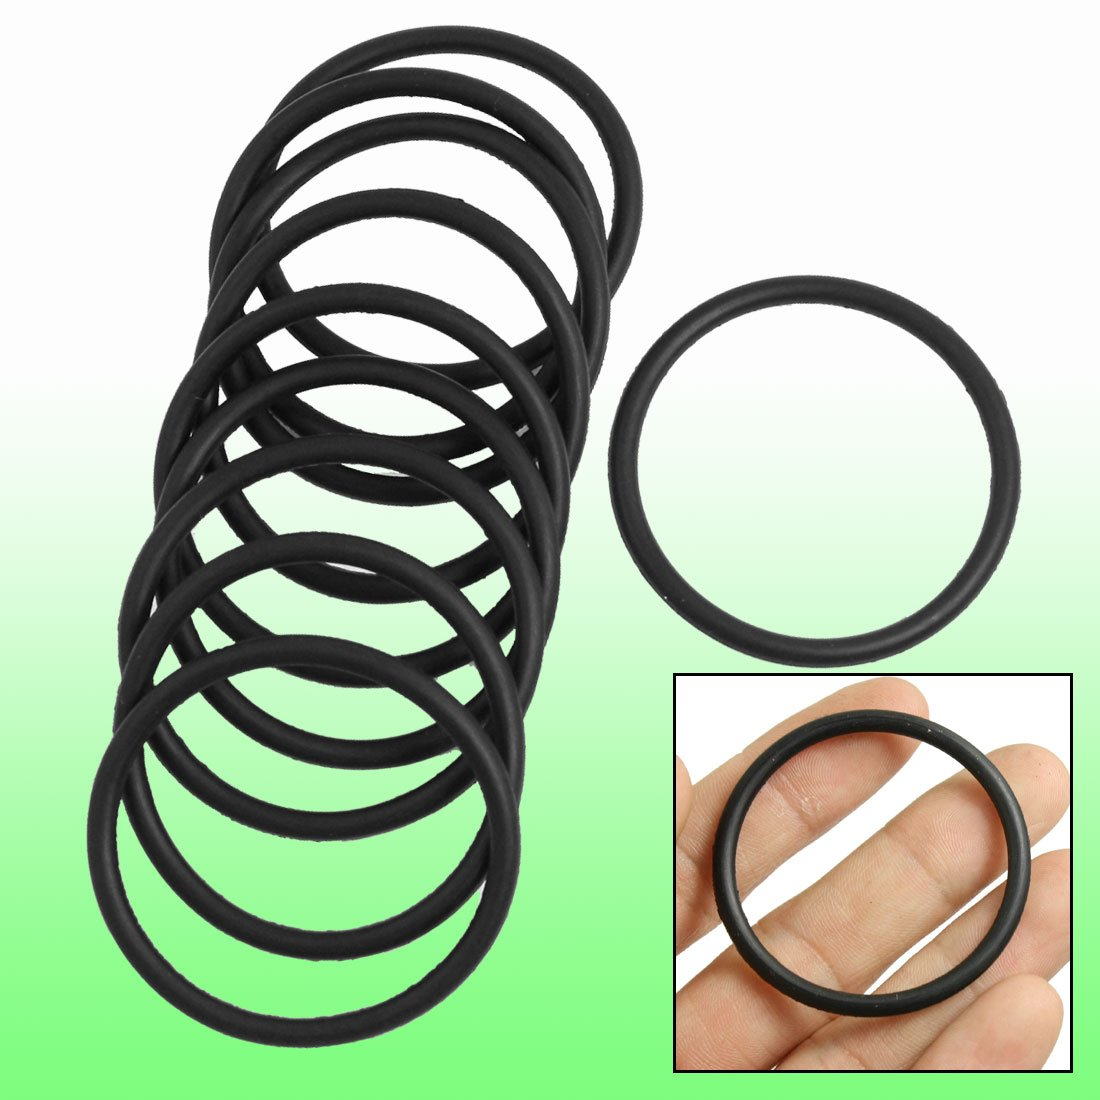 10 Pcs 3mm x 43mm Rubber Sealing Oil Filter O Rings Gasket Black